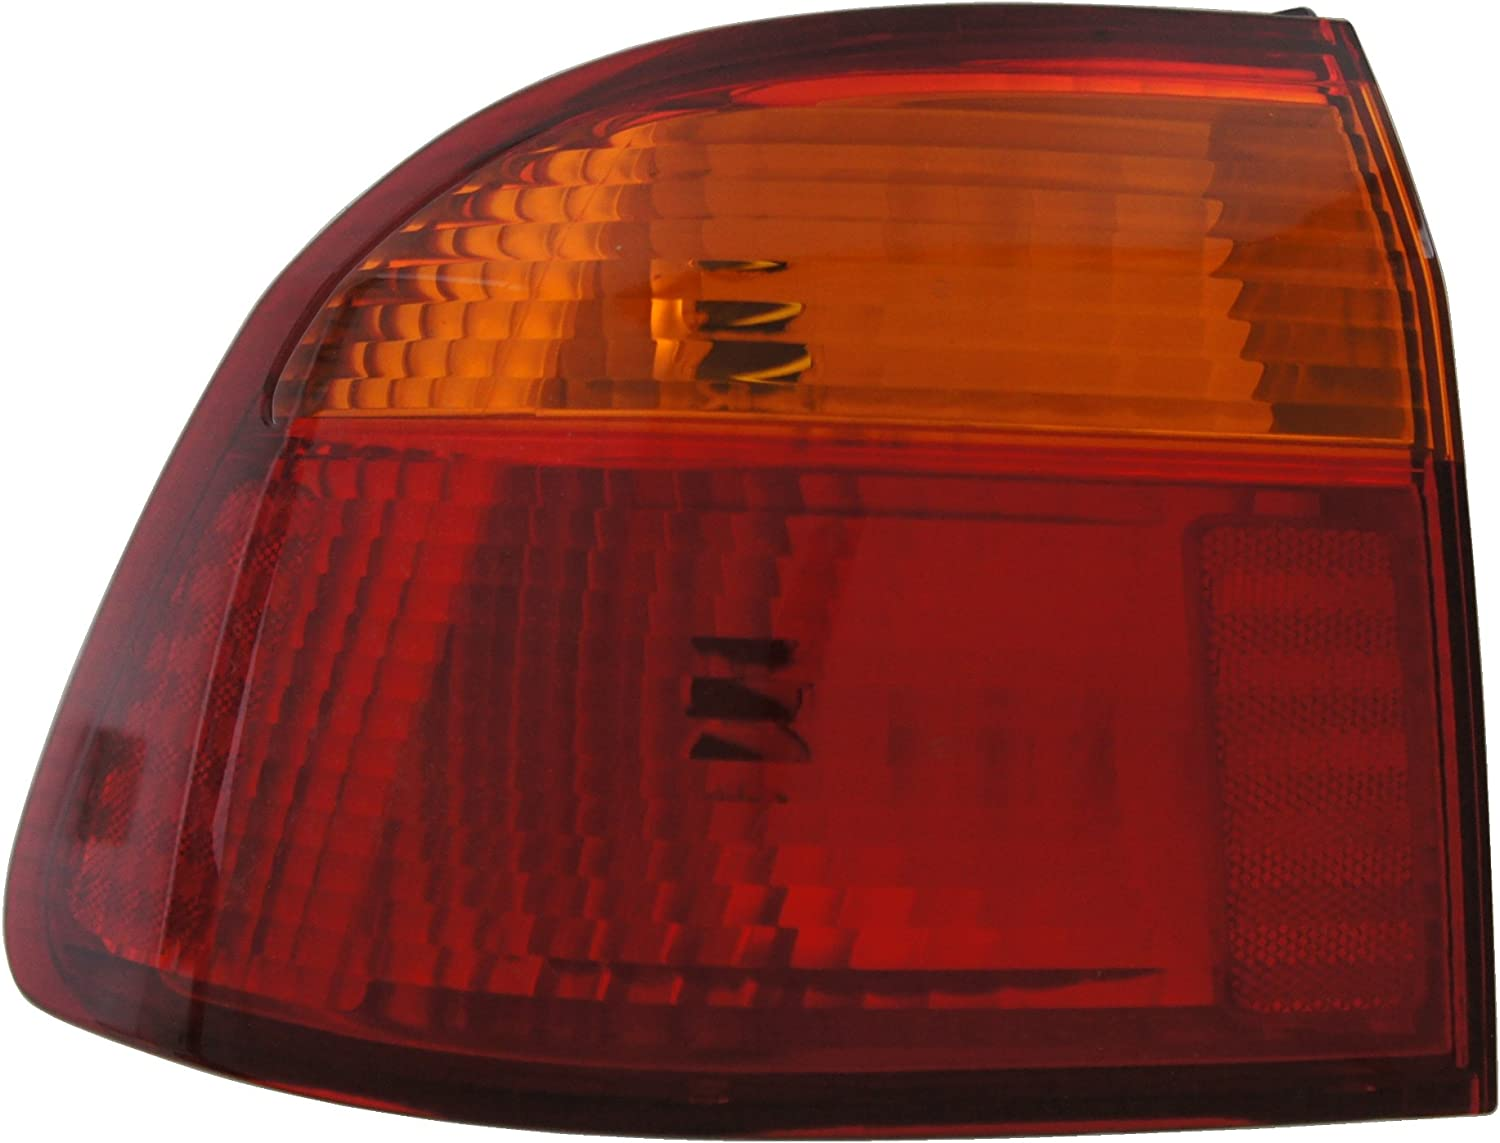 Genuine Honda Parts 33551-S04-A51 Driver Side Taillight Lens//Housing